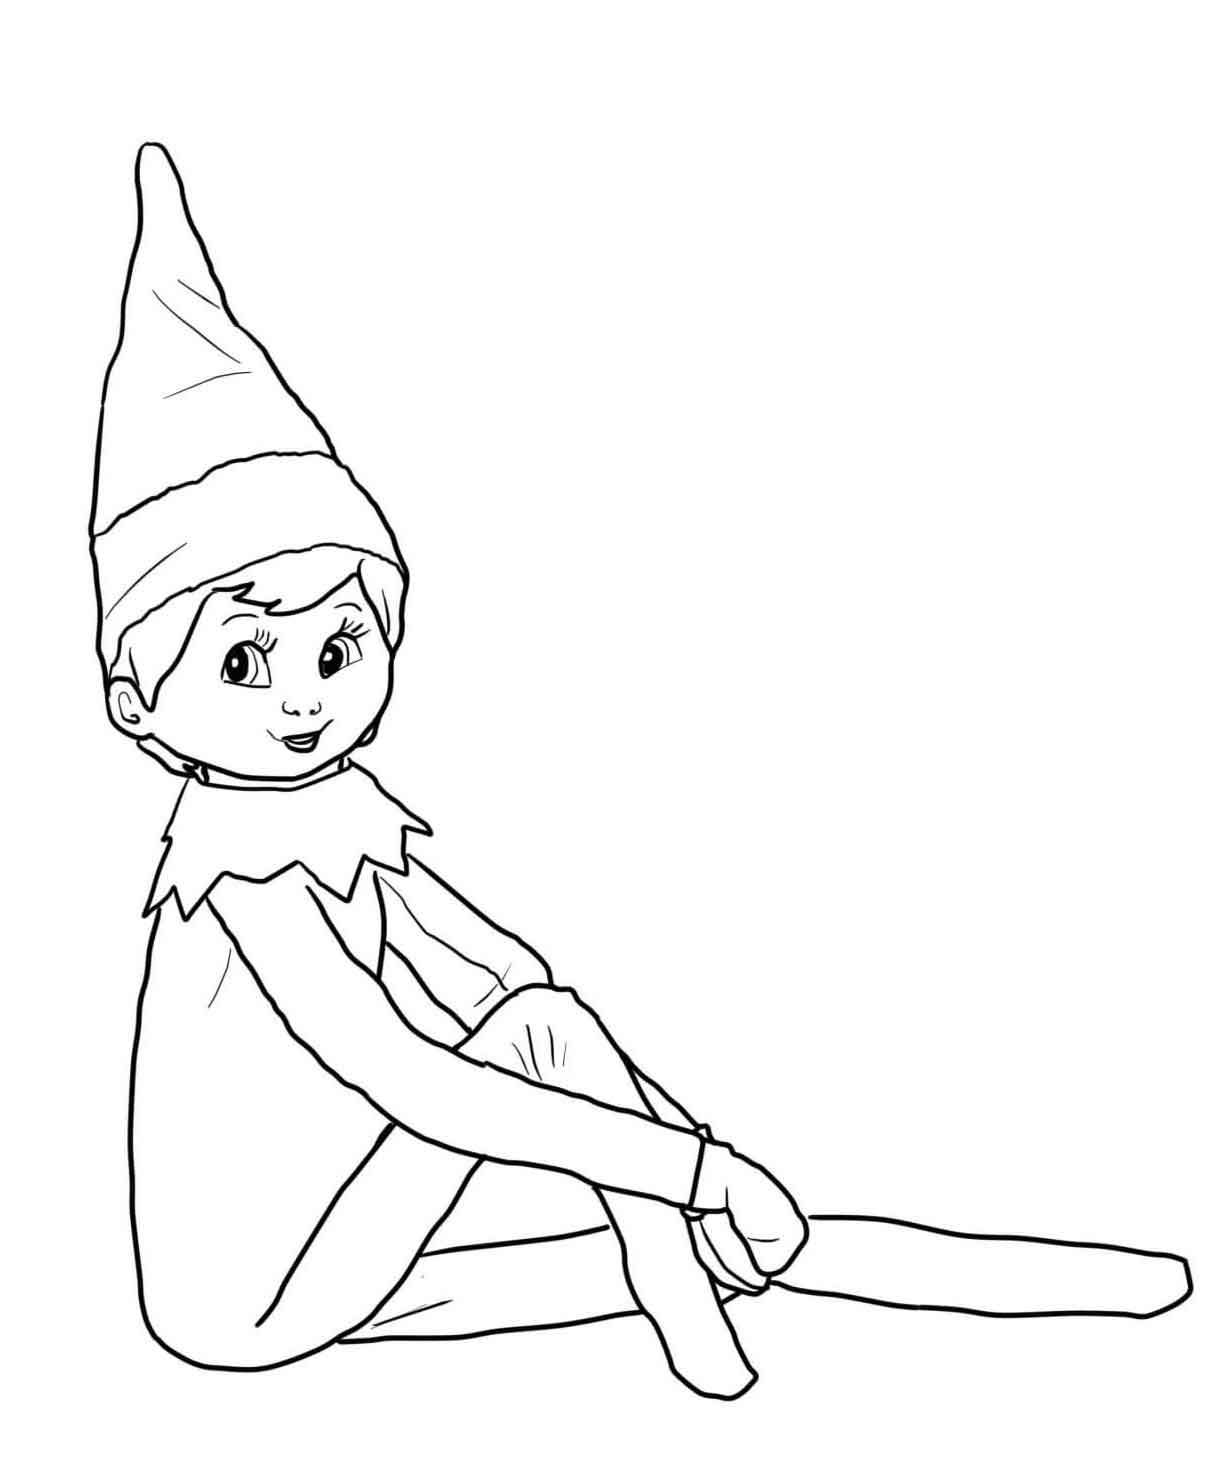 elf on the shelf coloring sheets 30 free printable elf on the shelf coloring pages shelf coloring the on elf sheets